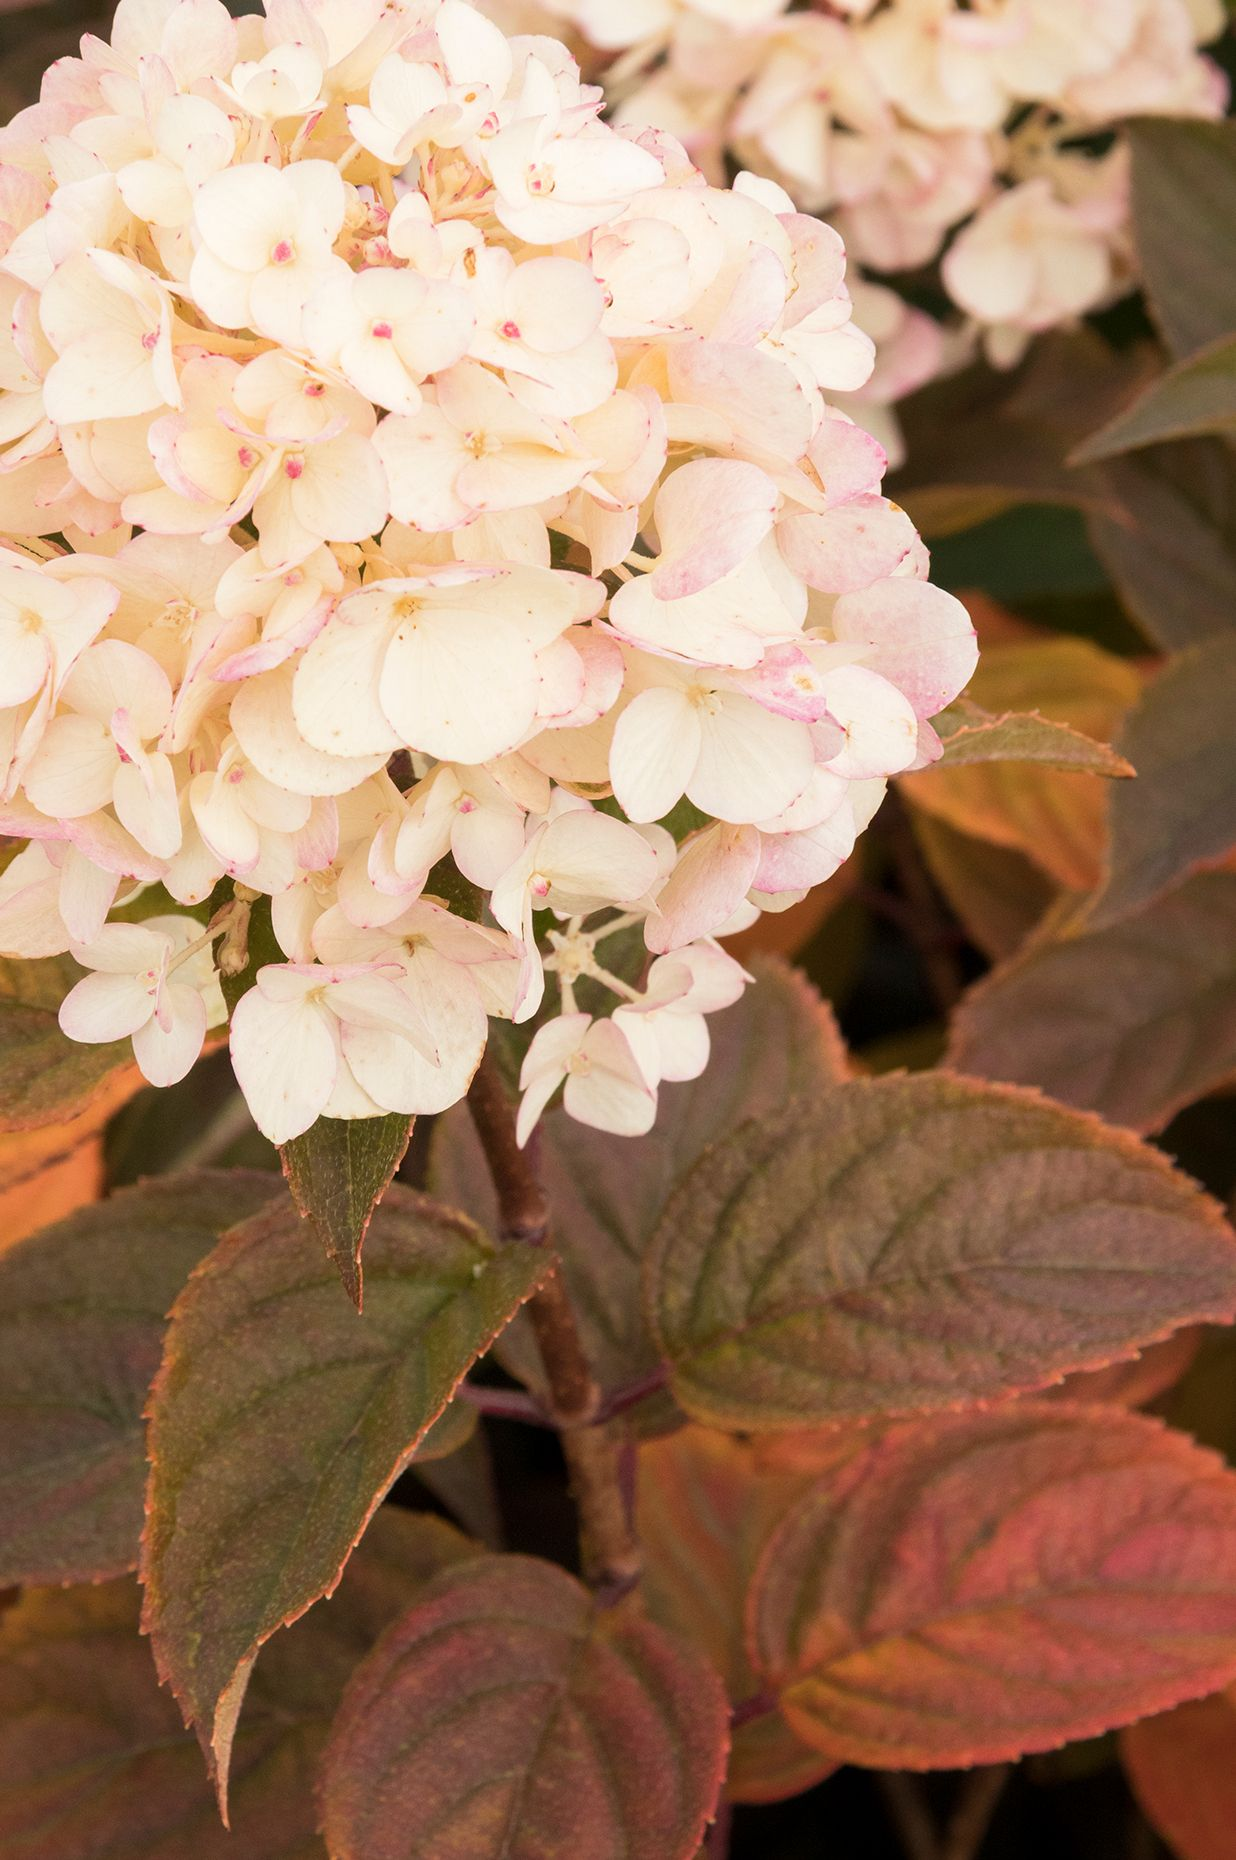 Candy Apple Hydrangea Plants Encyclopedia Growing Hydrangeas Hydrangea Monrovia Hydrangea